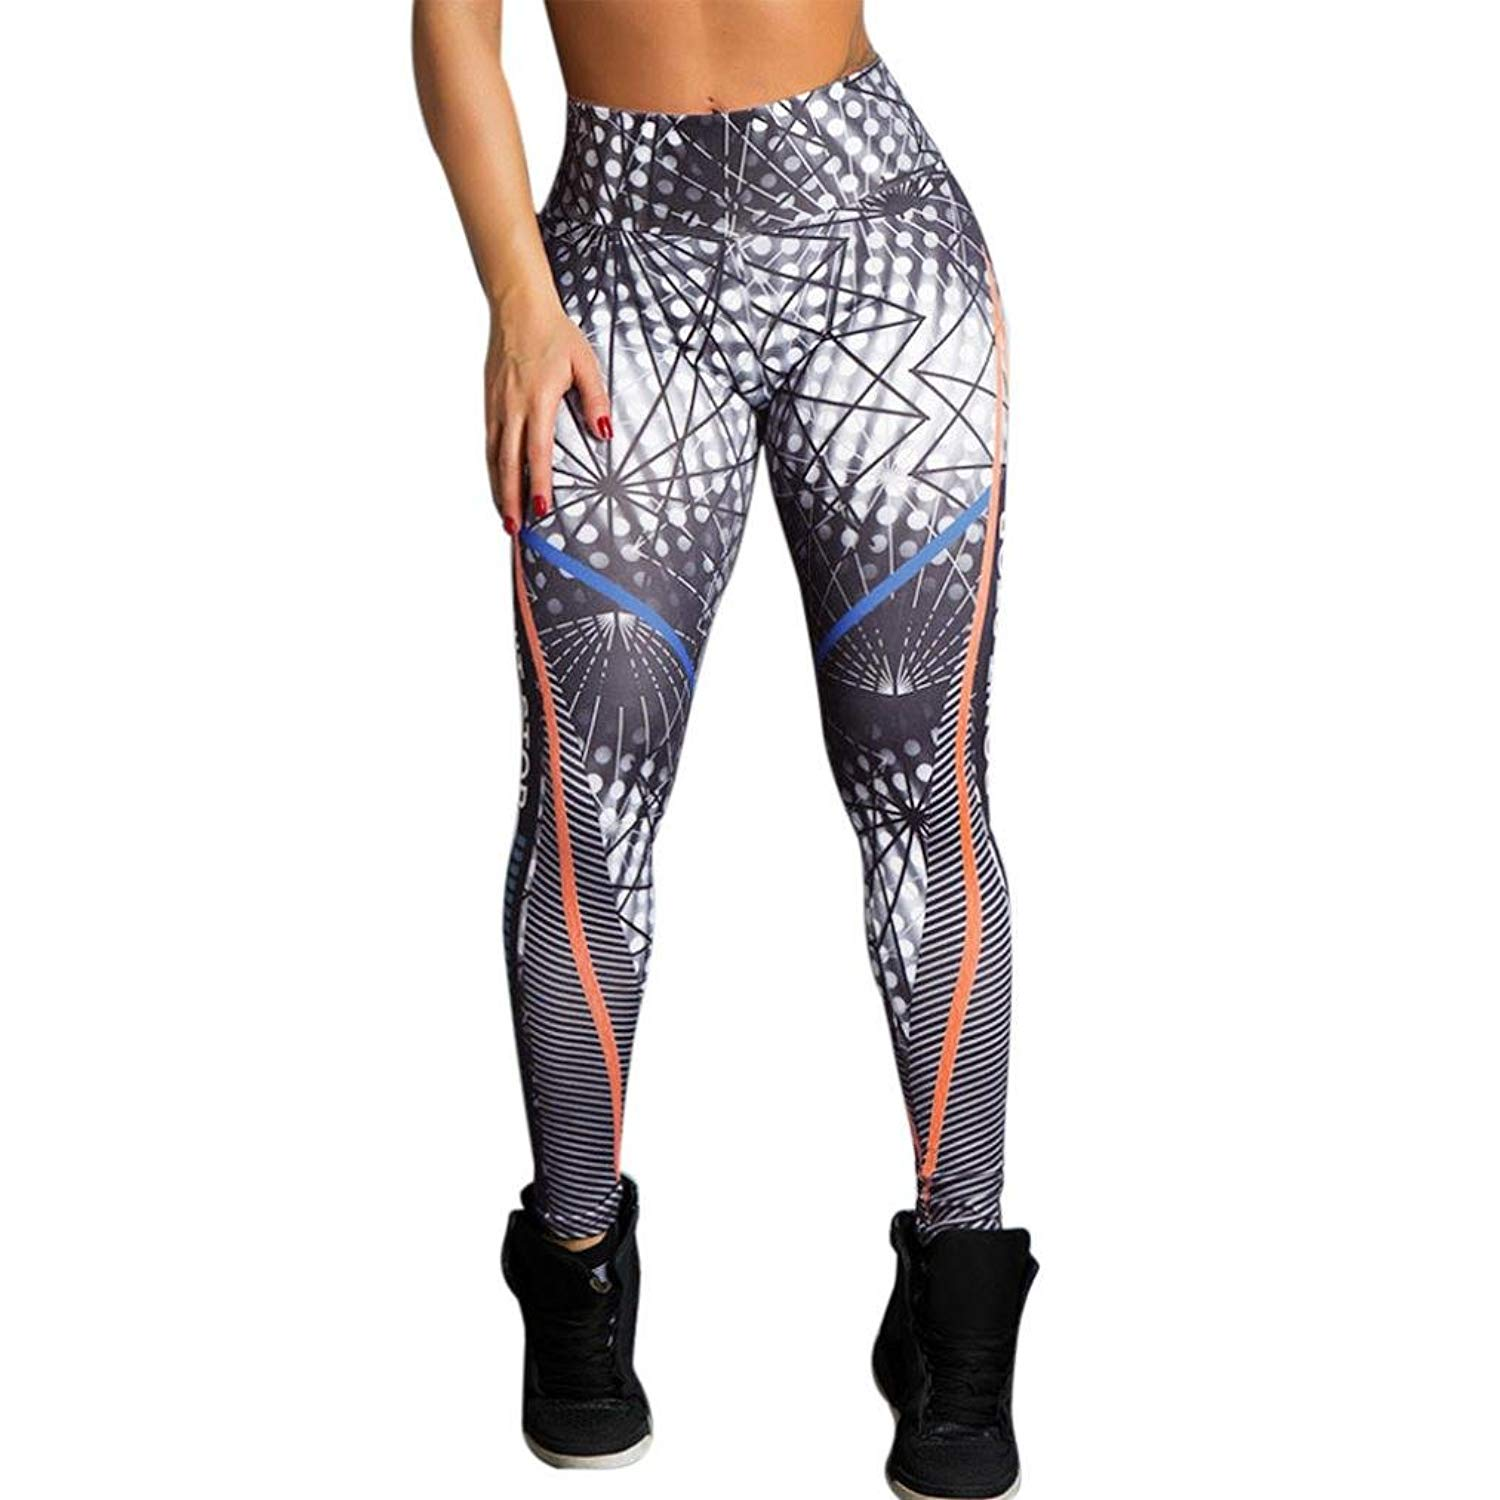 86850b6fef806 Get Quotations · Dreaman Women High Waist Fitness Leggings Running Gym Stretch  Sports Pants Trousers Yoga Pant Athleta Joggers